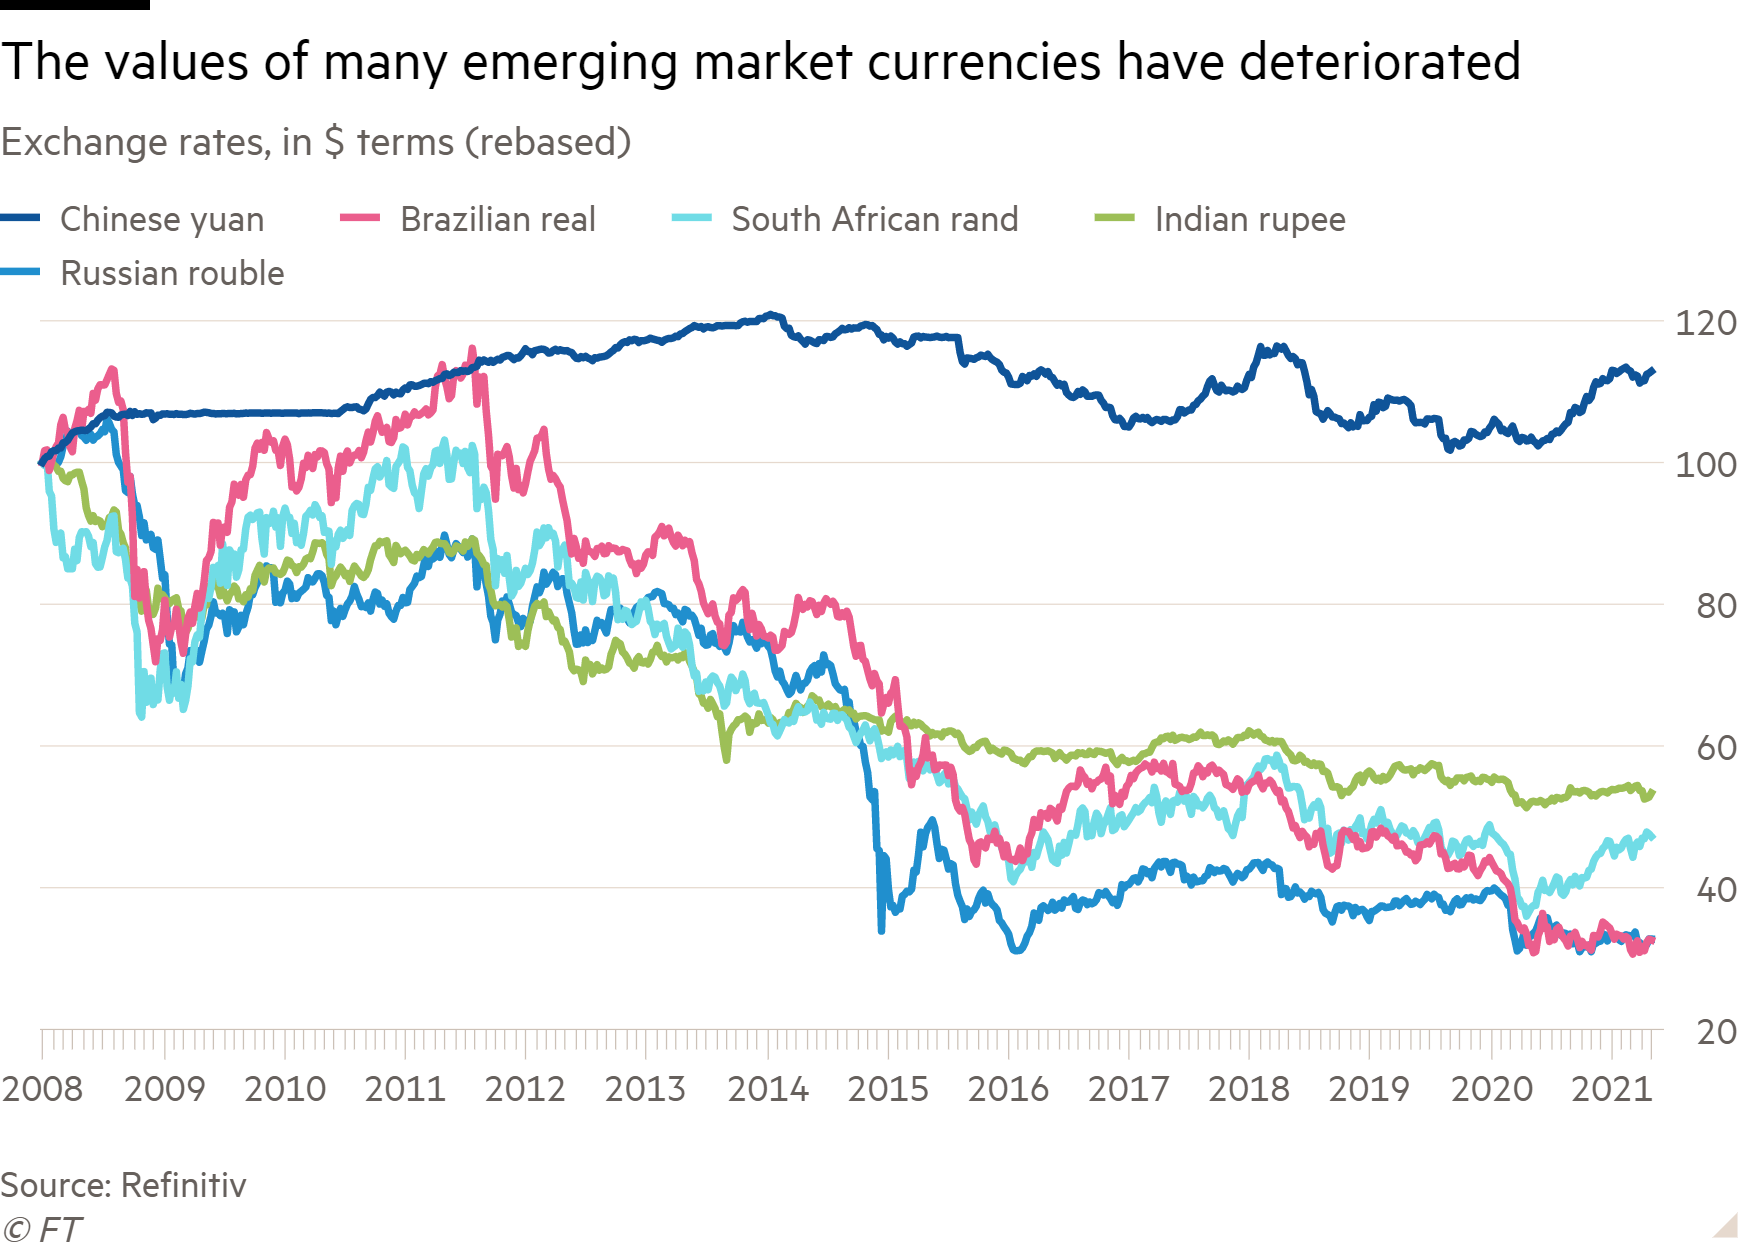 Line chart of Exchange rates, in $ terms (rebased) showing The values of many emerging market currencies have deteriorated